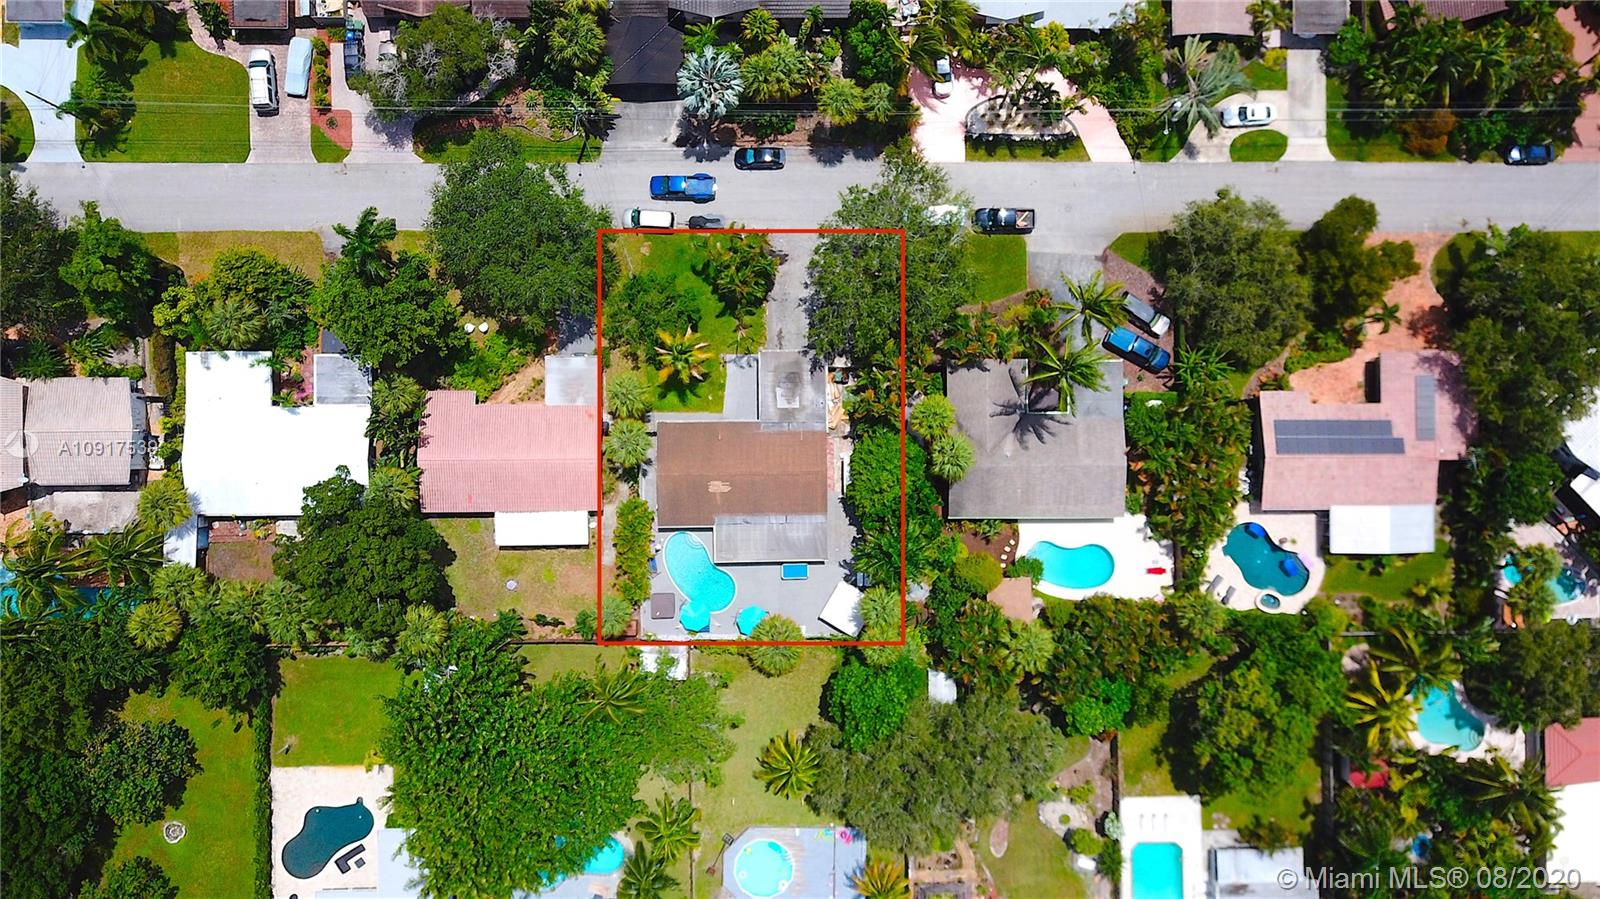 Welcome to this COMPLETELY Renovated 3/3 pool home downtown Fort Lauderdale! Home boasts Powered zebra blinds and shades, divert security inside and out, new appliances, new doors and built in closets, impact PGT rated windows and doors, newer roof, recessed led lighting, lighting is smart voice activated, ample parking, new salt water pool equipment, tiki bar with electric, Dylan mini splits in each room owner says electric bill is under $100 a month! Too much to list this property will not last please schedule your showing today.Also please see the virtual walkthrough